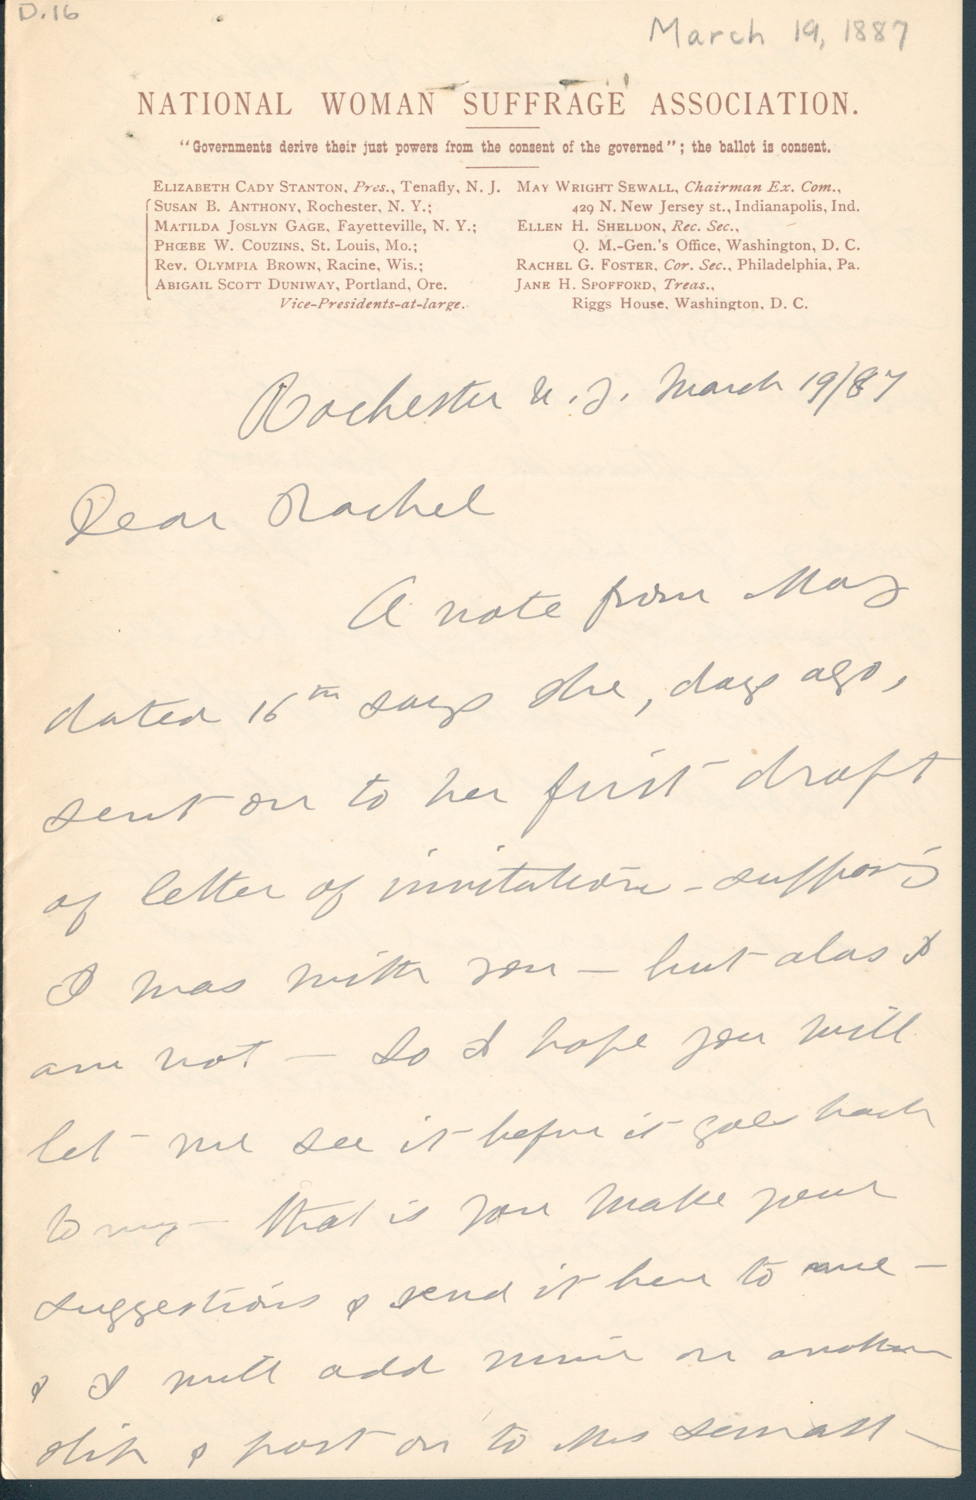 Anthony susan b avery rachel foster rbscp digitized letter page 1 aljukfo Image collections